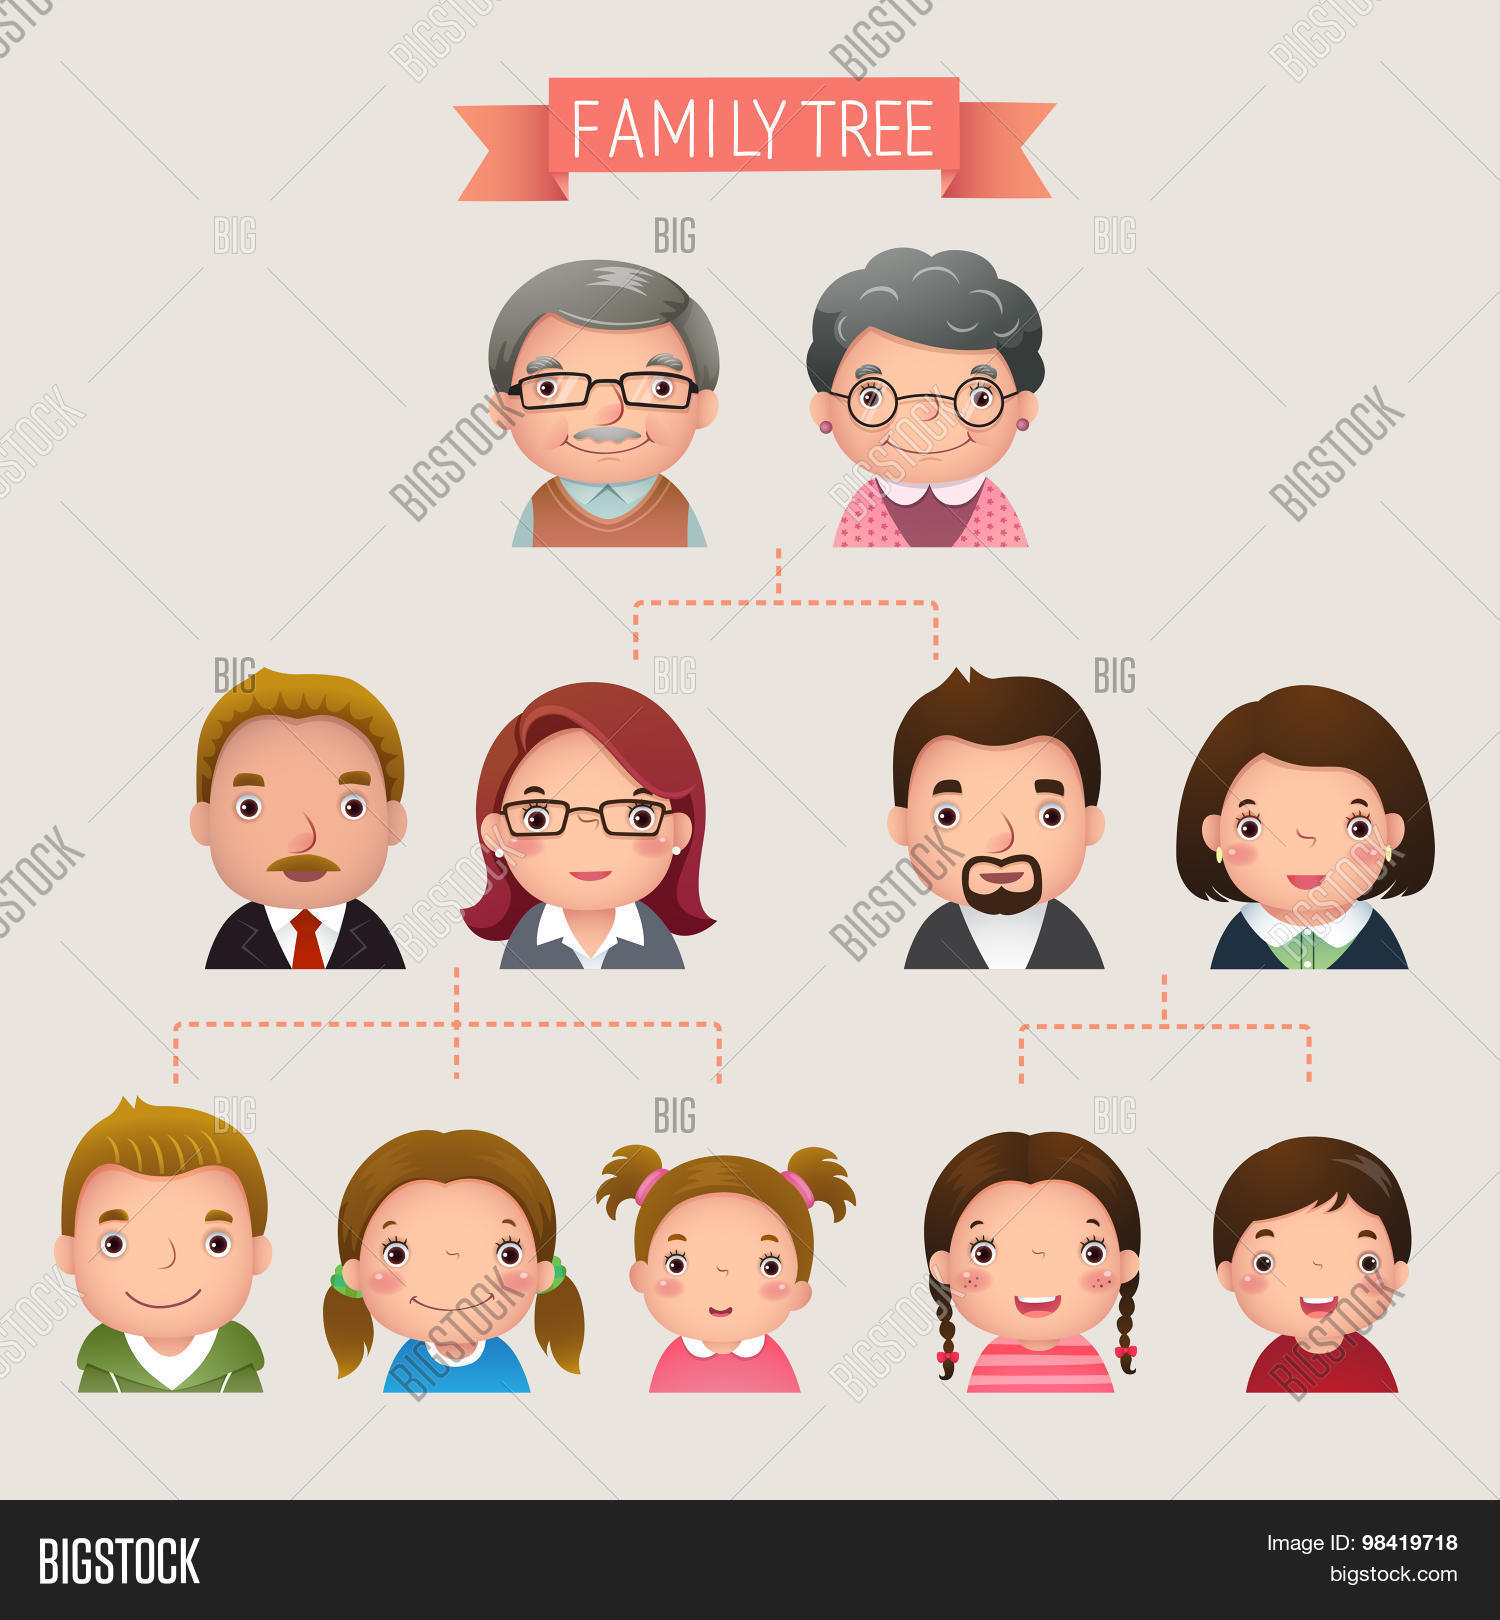 hight resolution of cartoon vector illustration of family tree a diagram on a genealogical tree